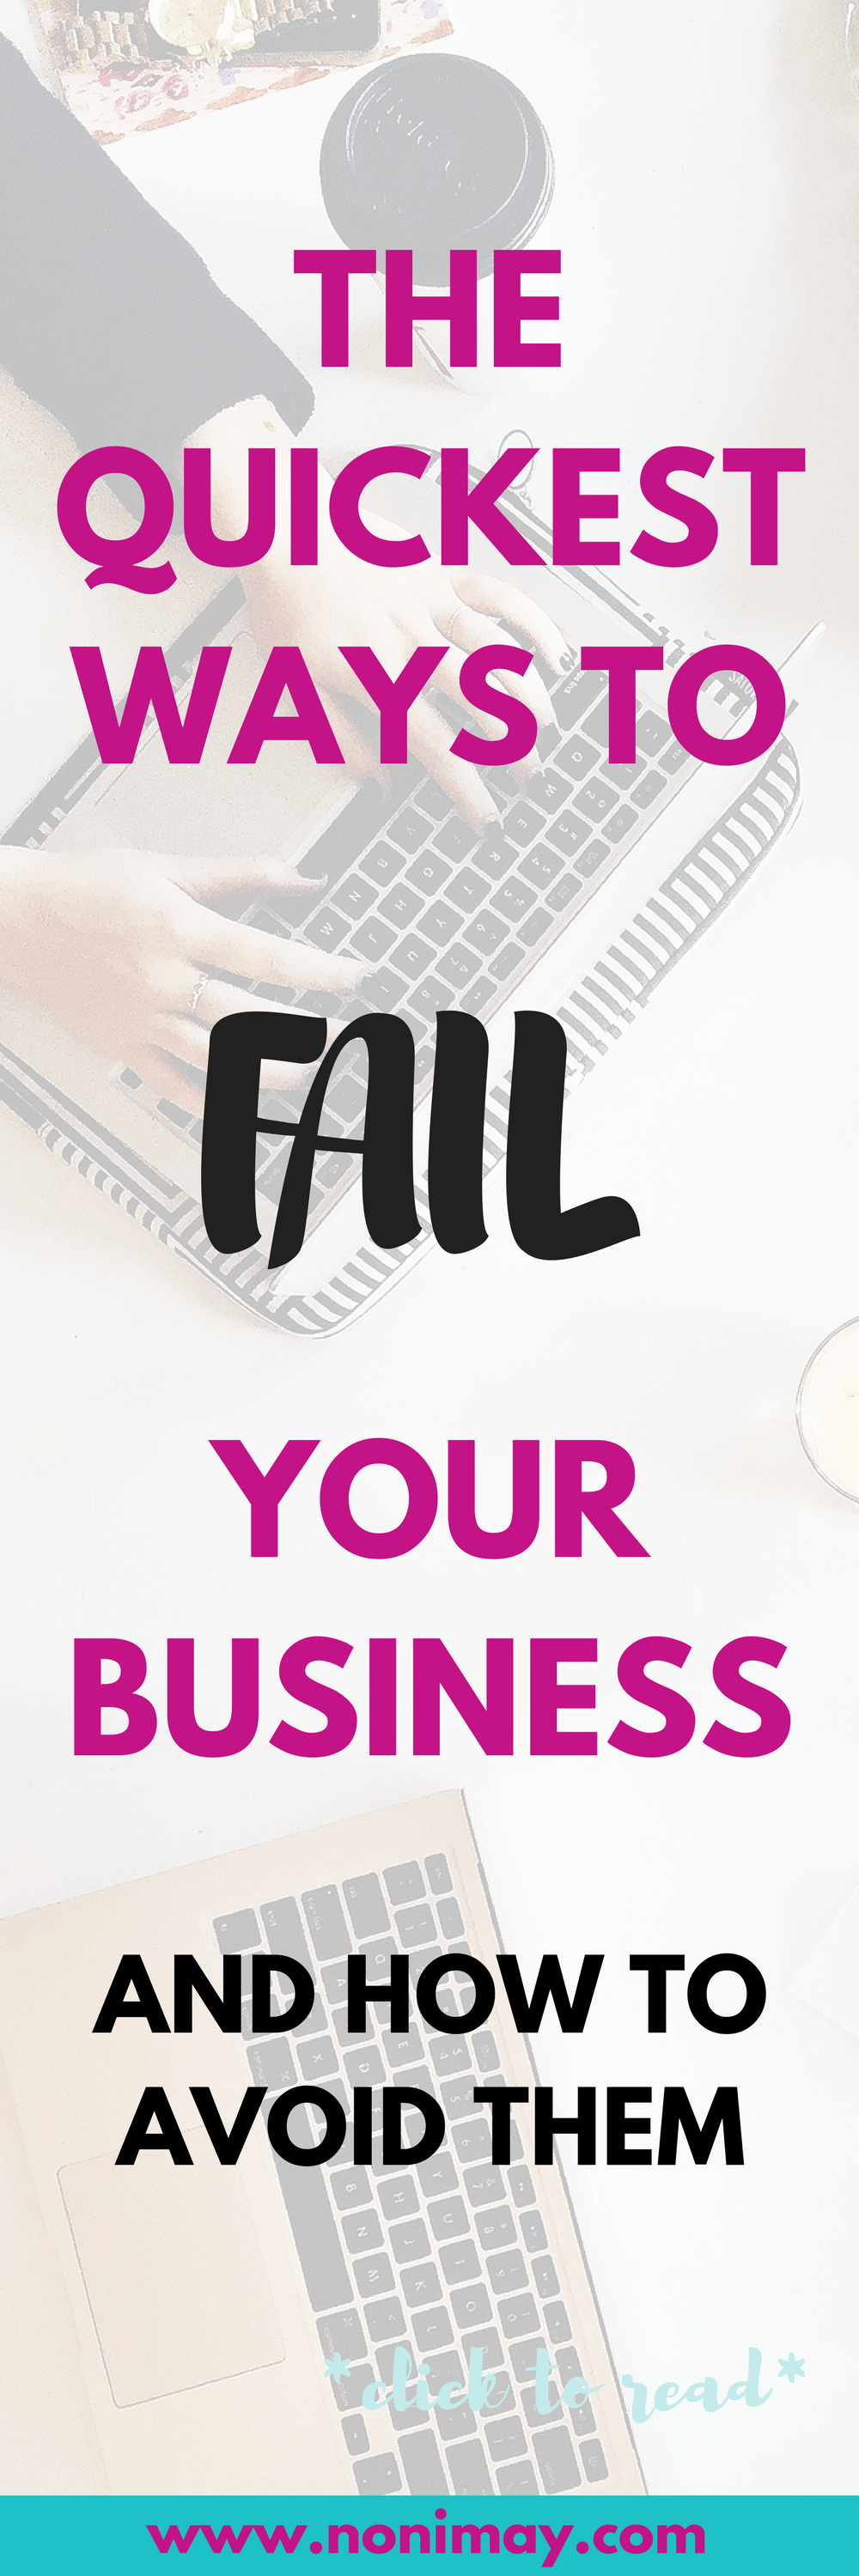 The quickest ways to fail your business and how to avoid them